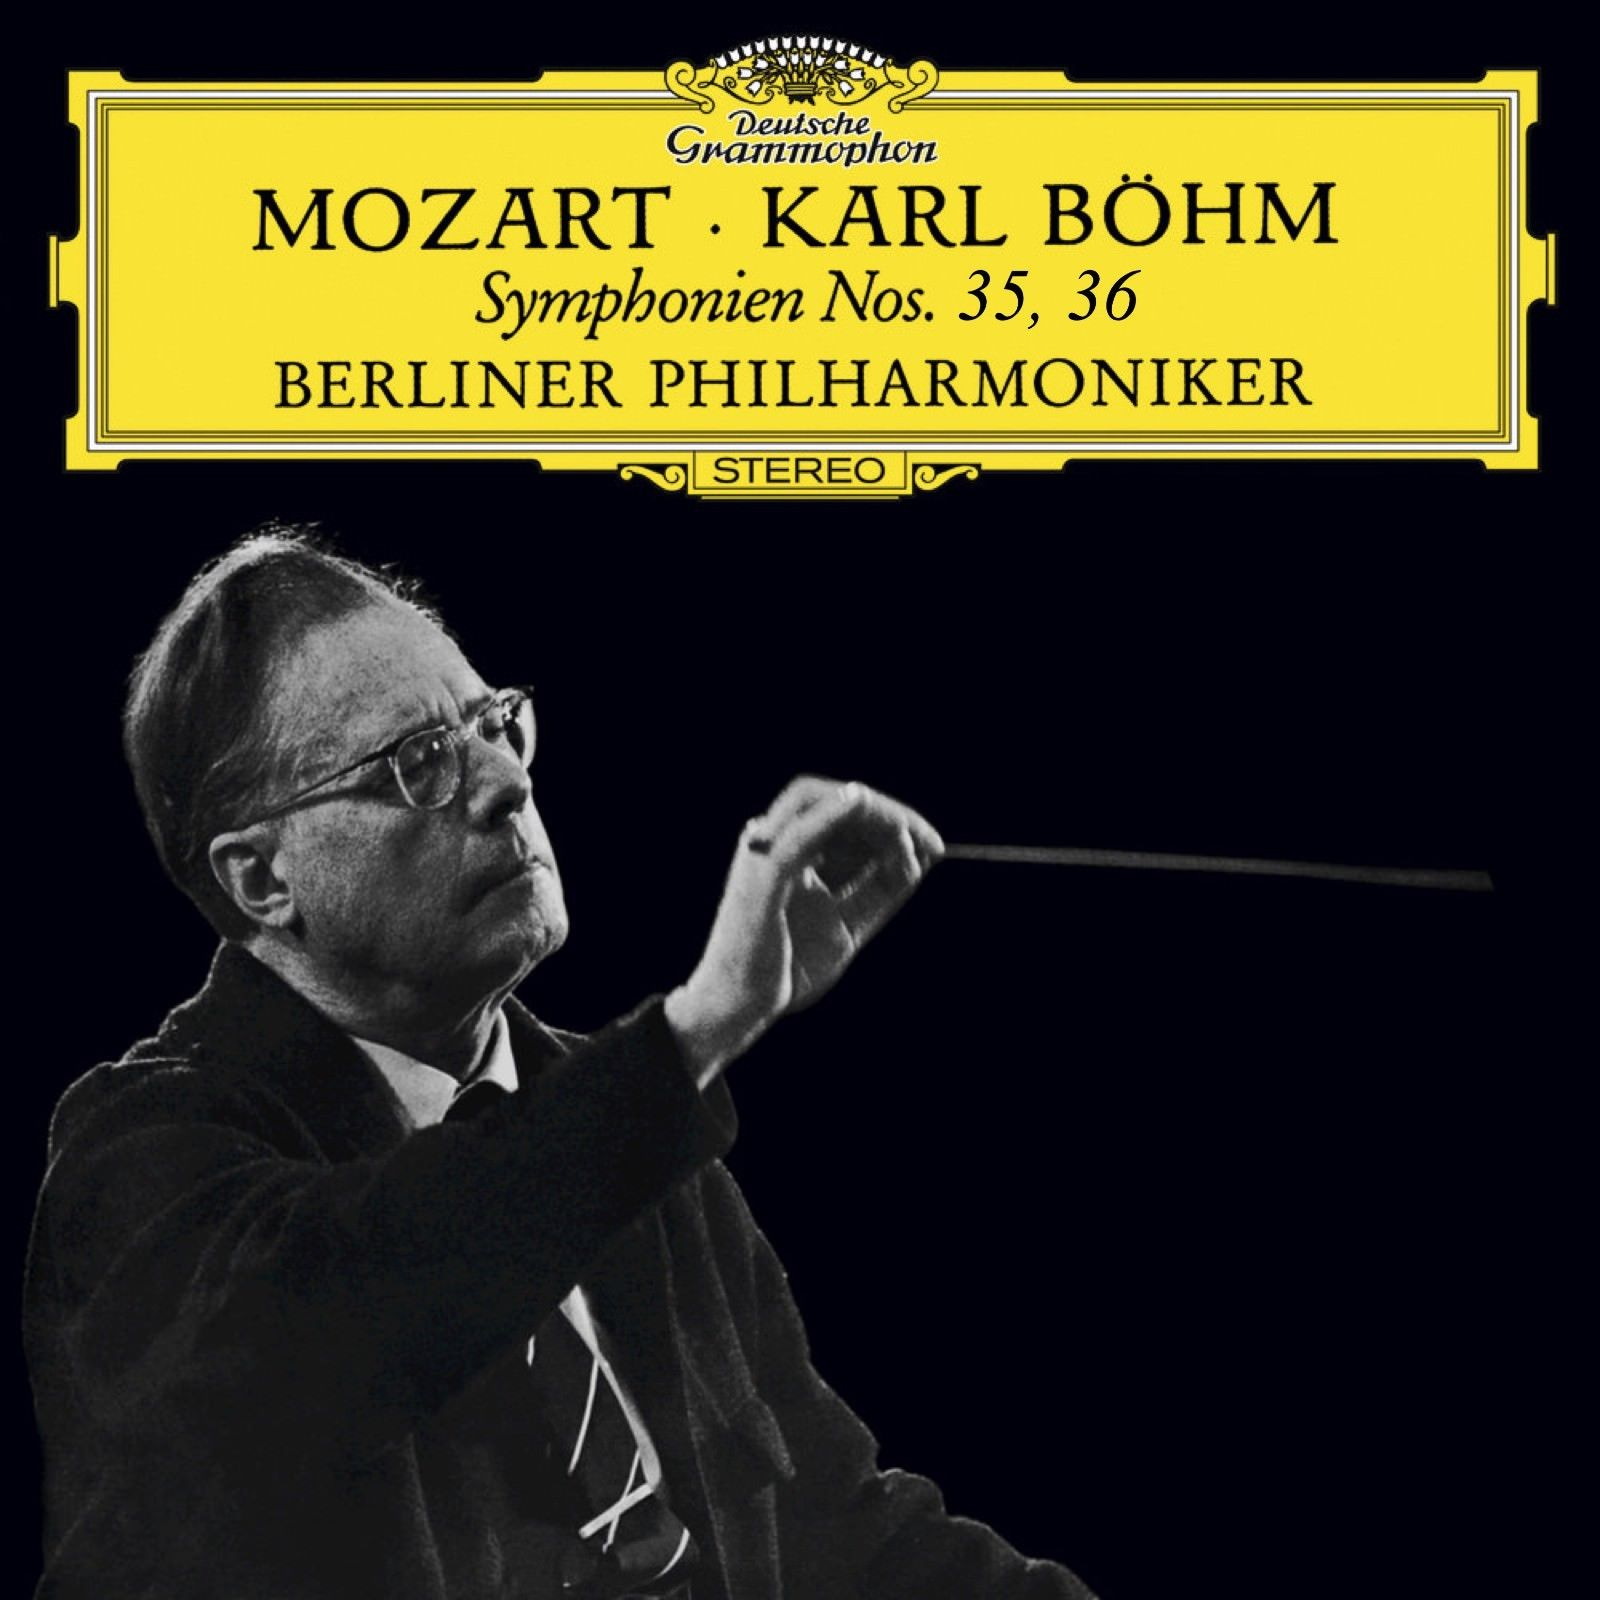 2 TRACK, 15 IPS, MOZART SYMPHONY 35 & 36, BOHM, BERLIN PHIL - Radio Station Reel